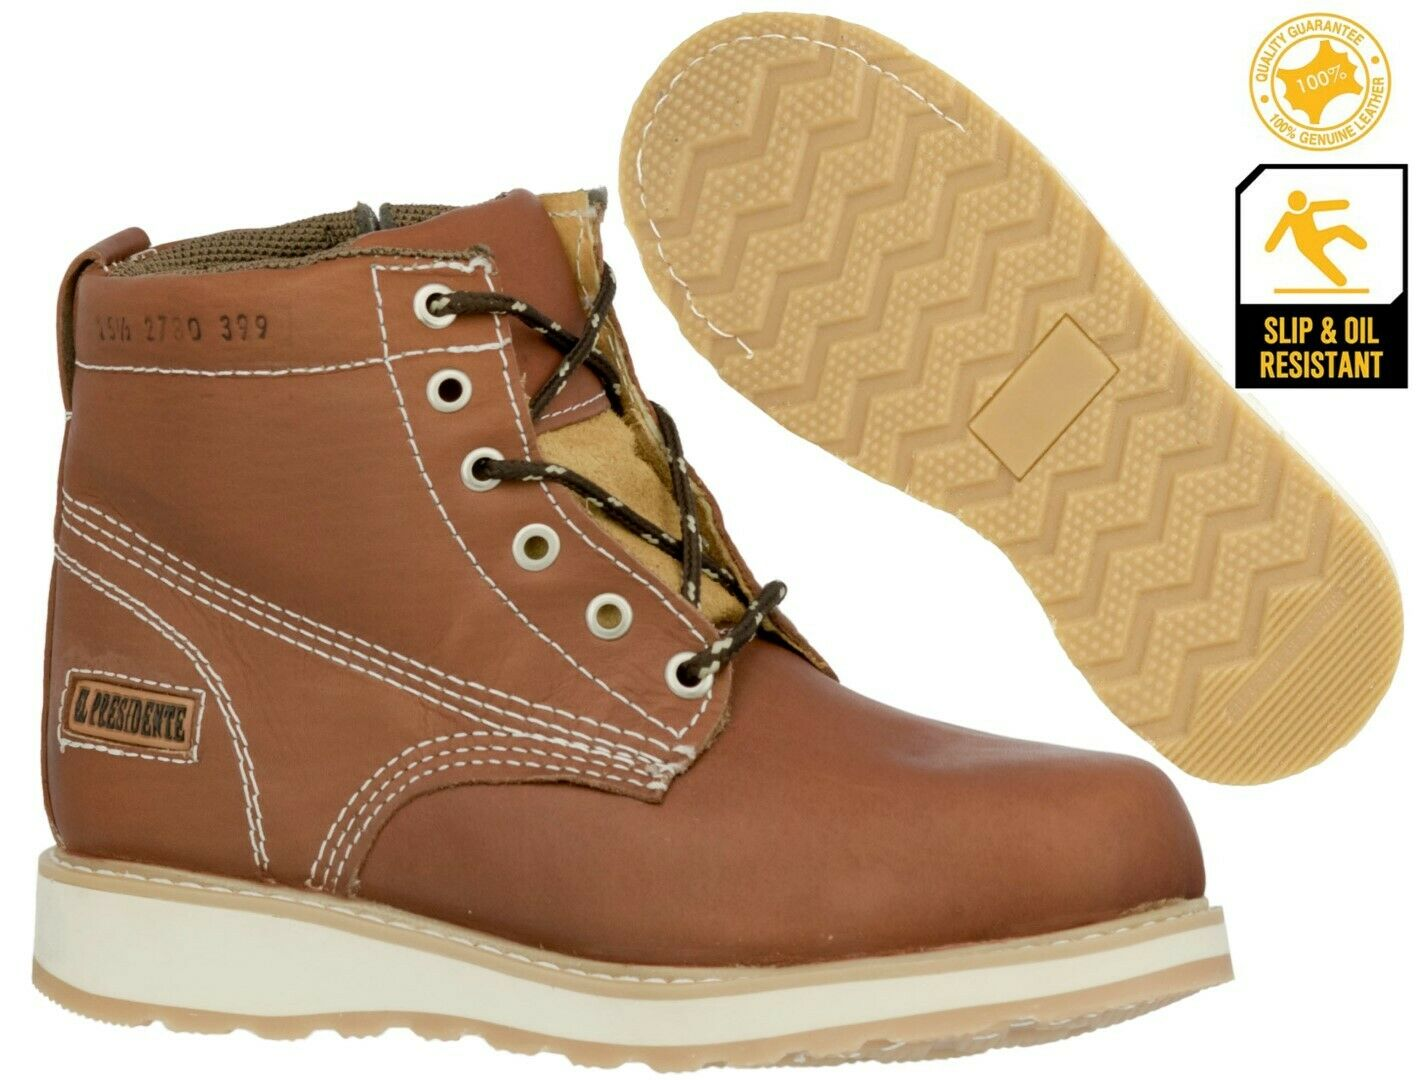 Mens Honey Brown Work Boots Genuine Leather Lace Up Safety Oil Resistant Shoes